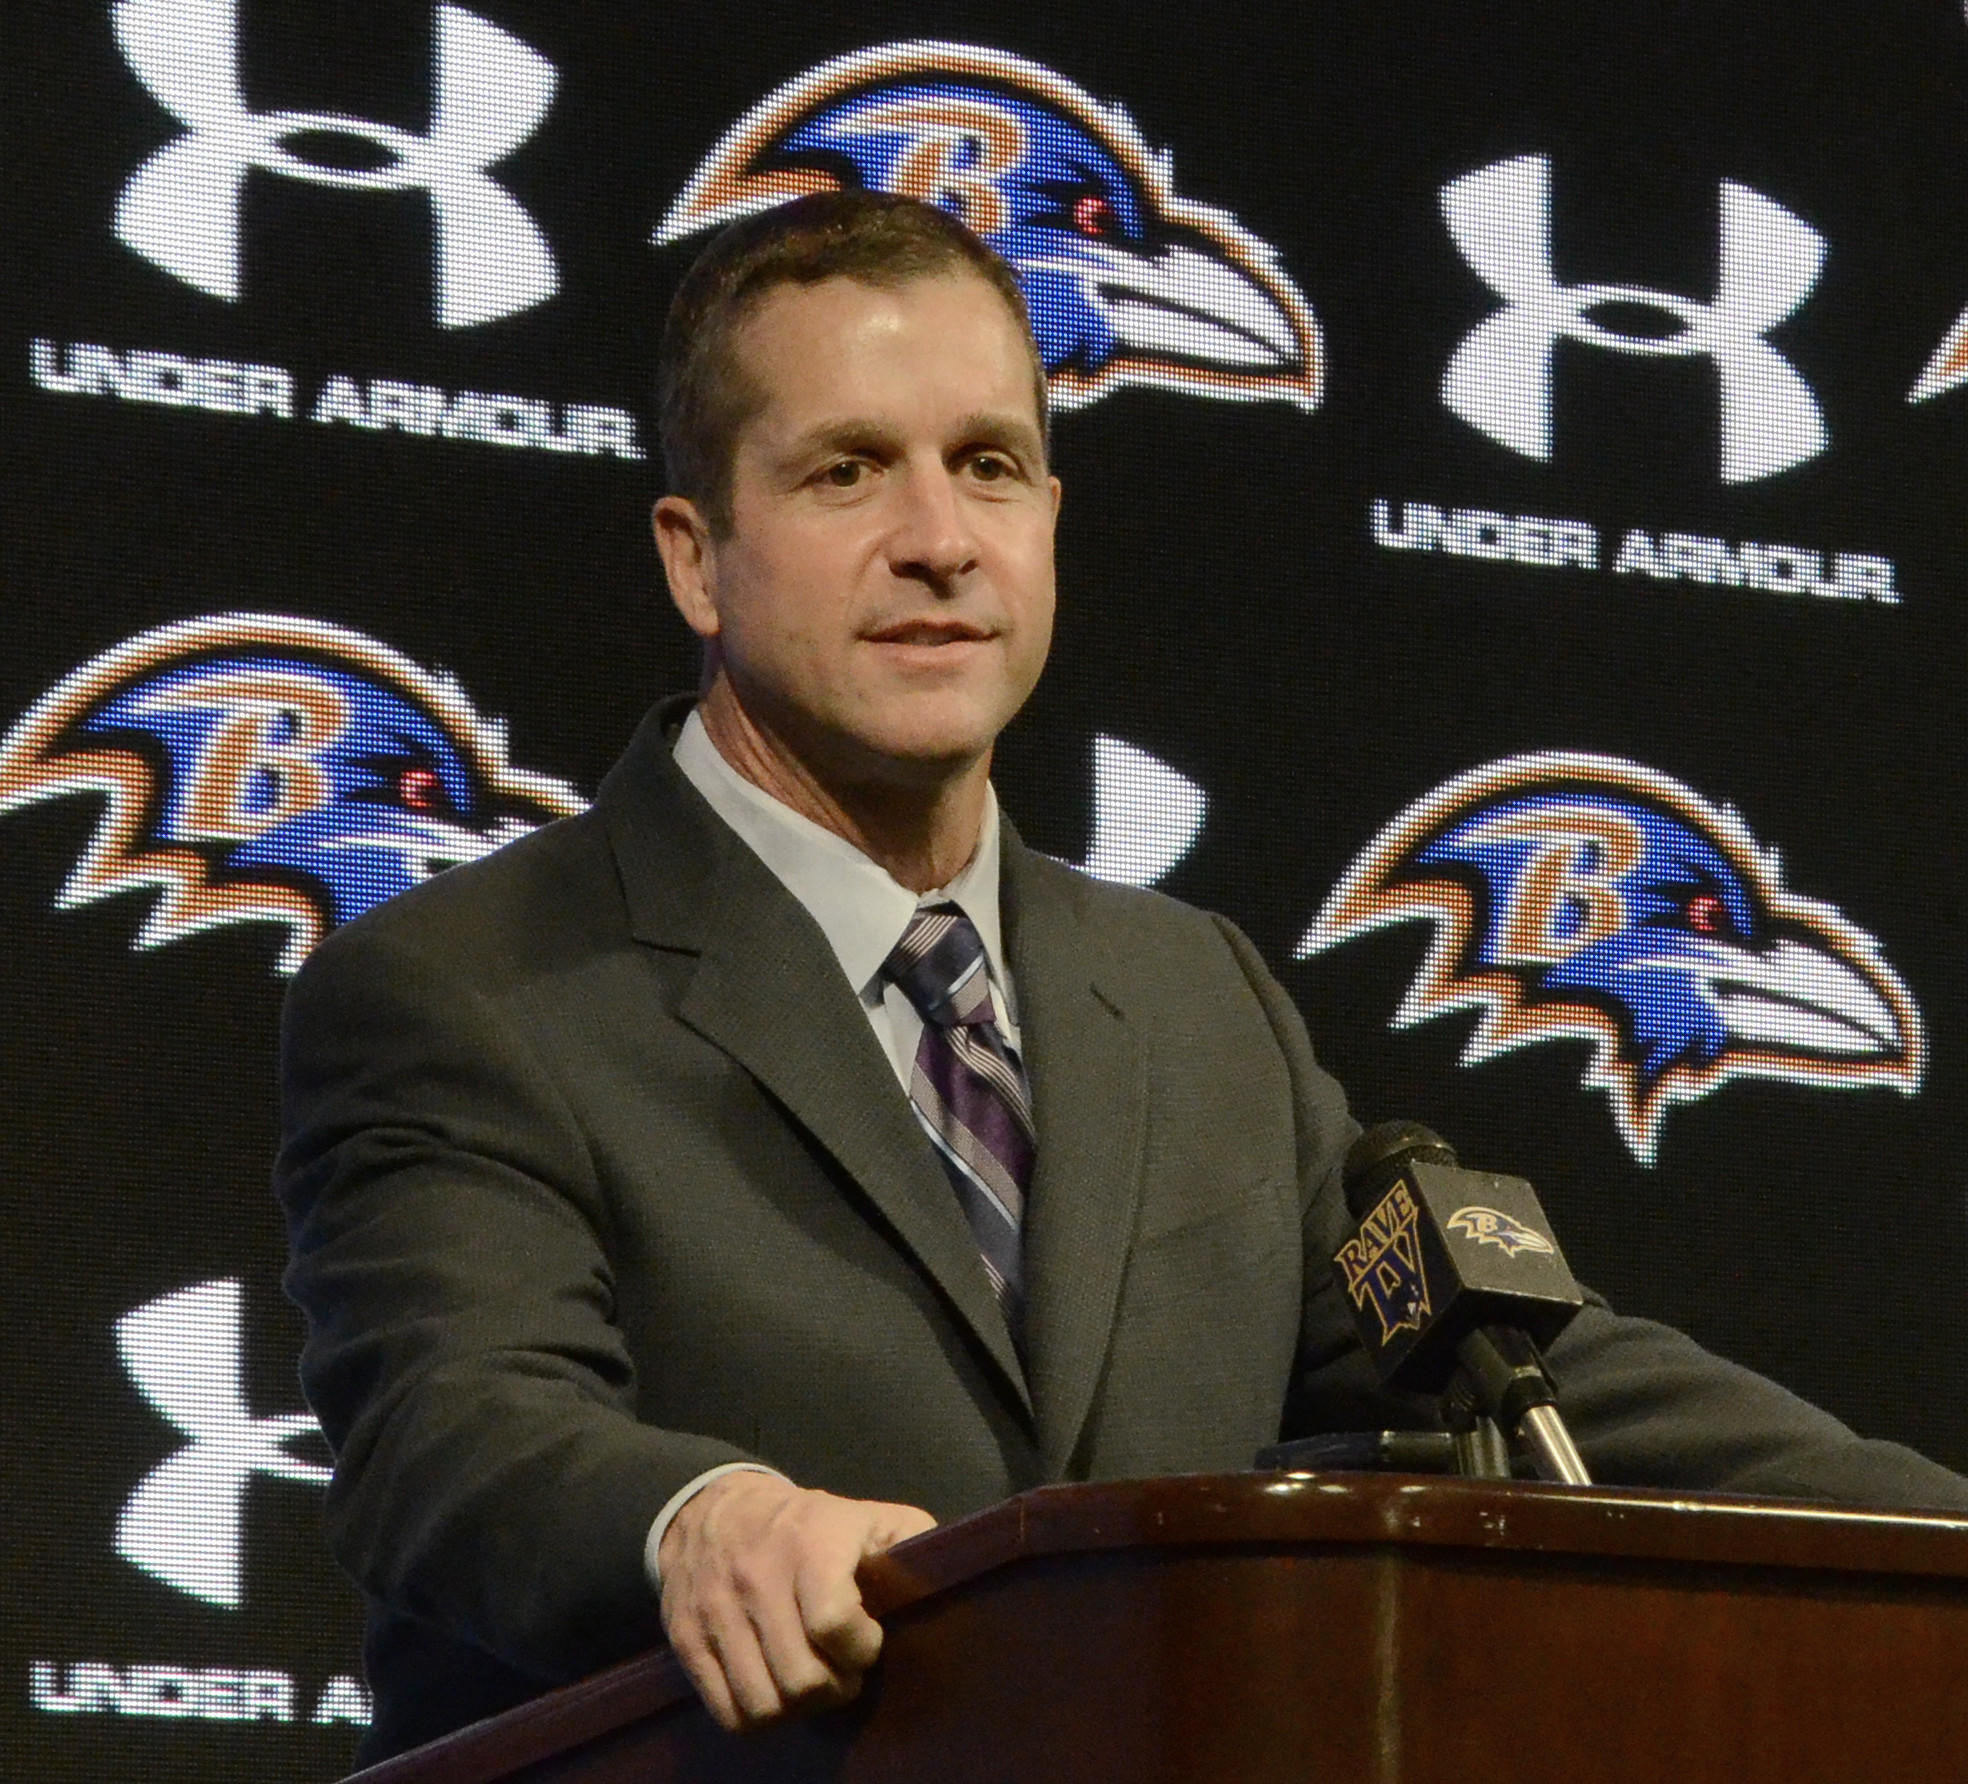 Ravens coach John Harbaugh addresses the media during his season-ending news conference on Tuesday.